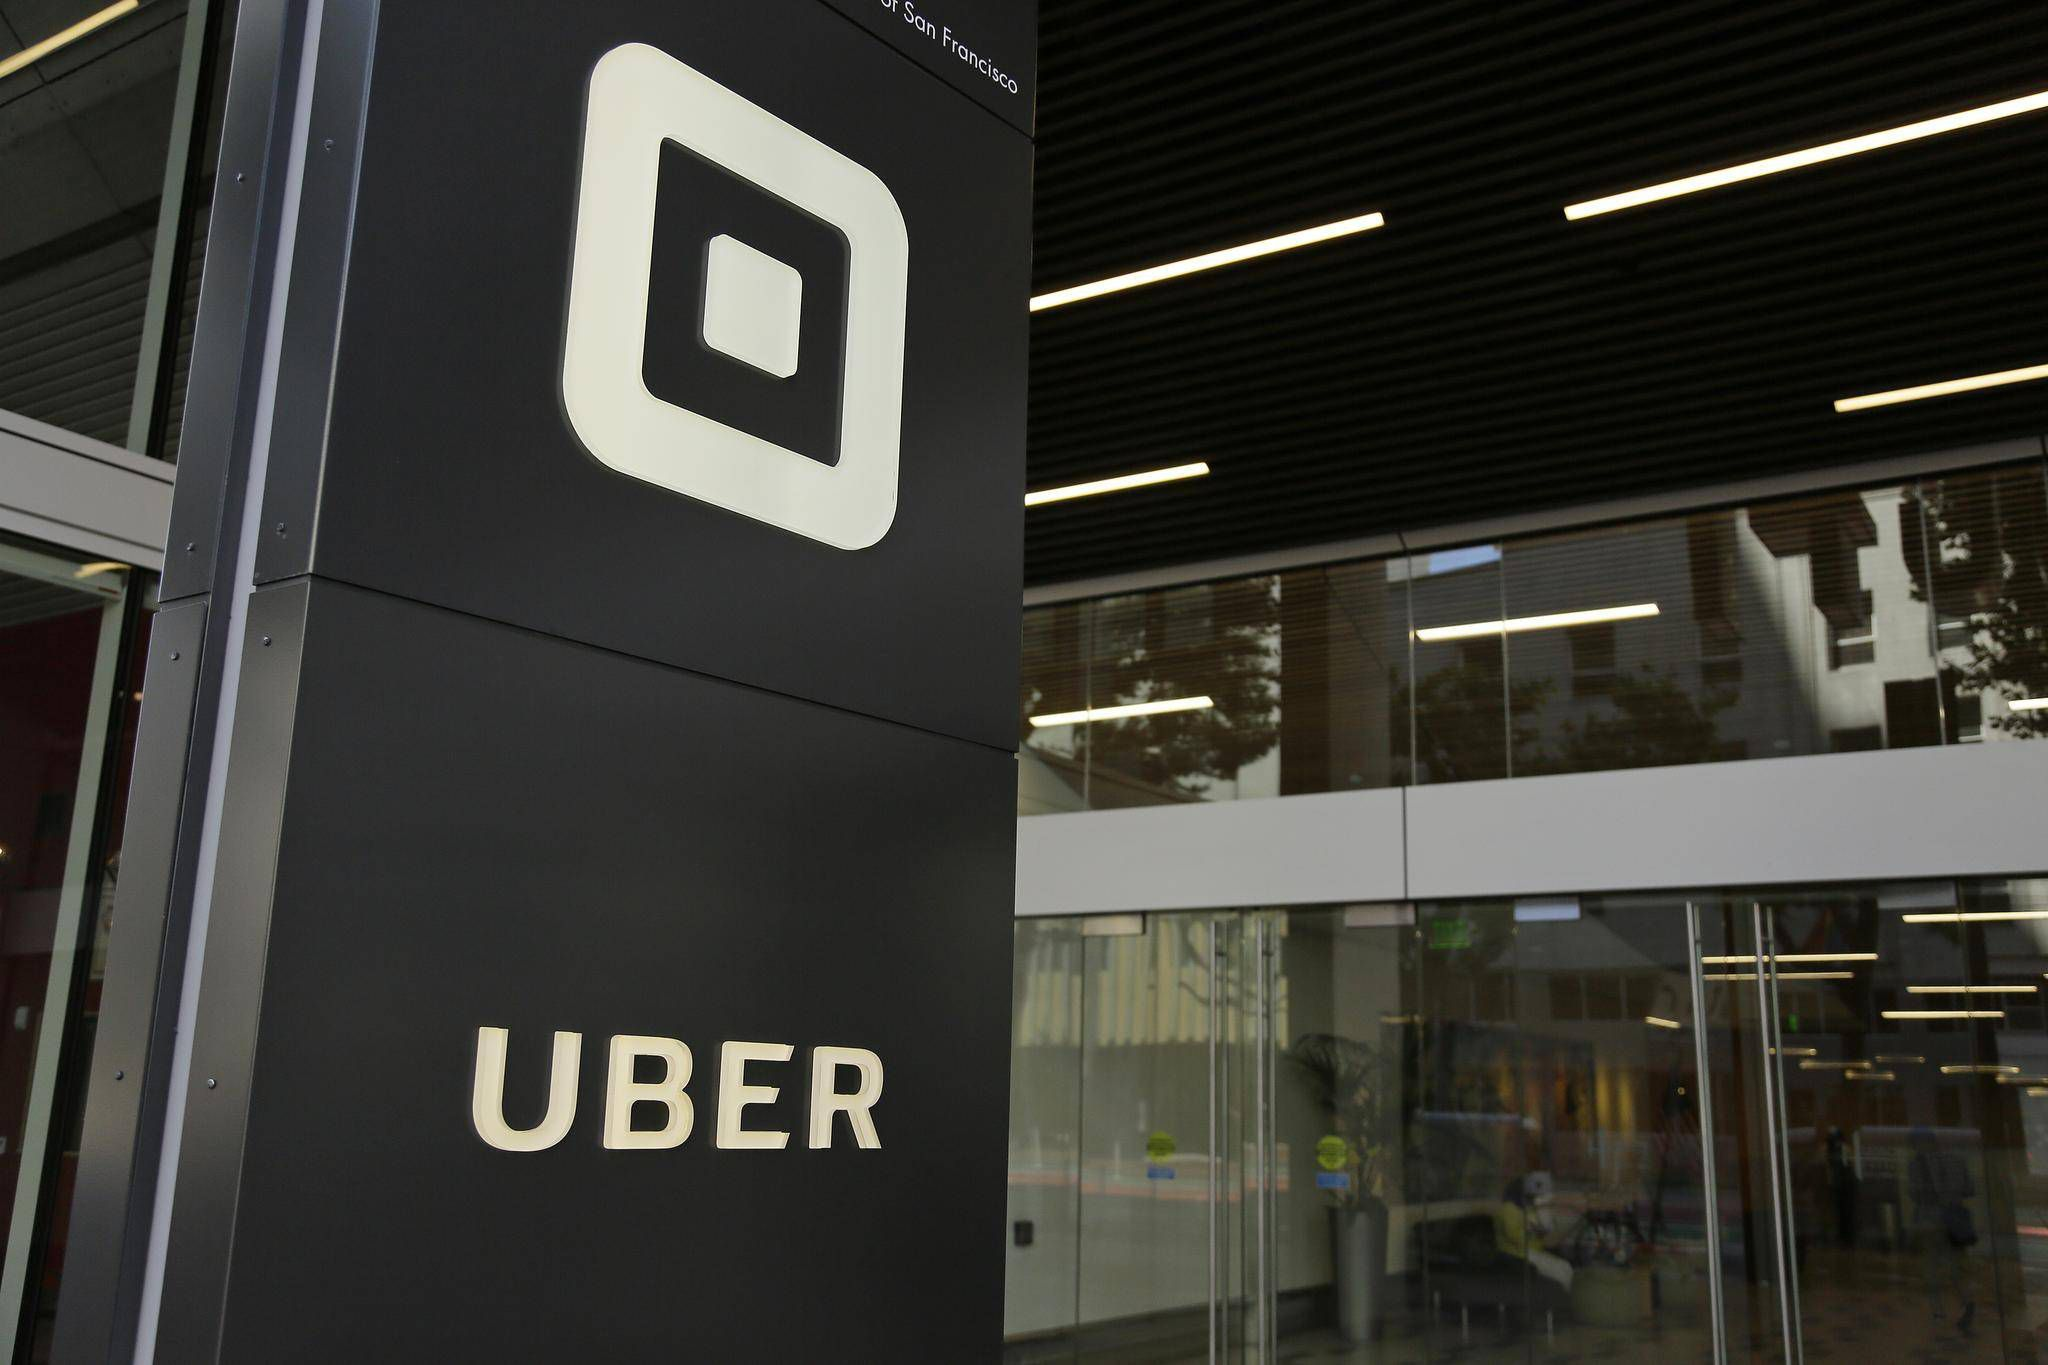 Uber ceo aims to pare losses and get the love back the globe uber ceo aims to pare losses and get the love back the globe and mail biocorpaavc